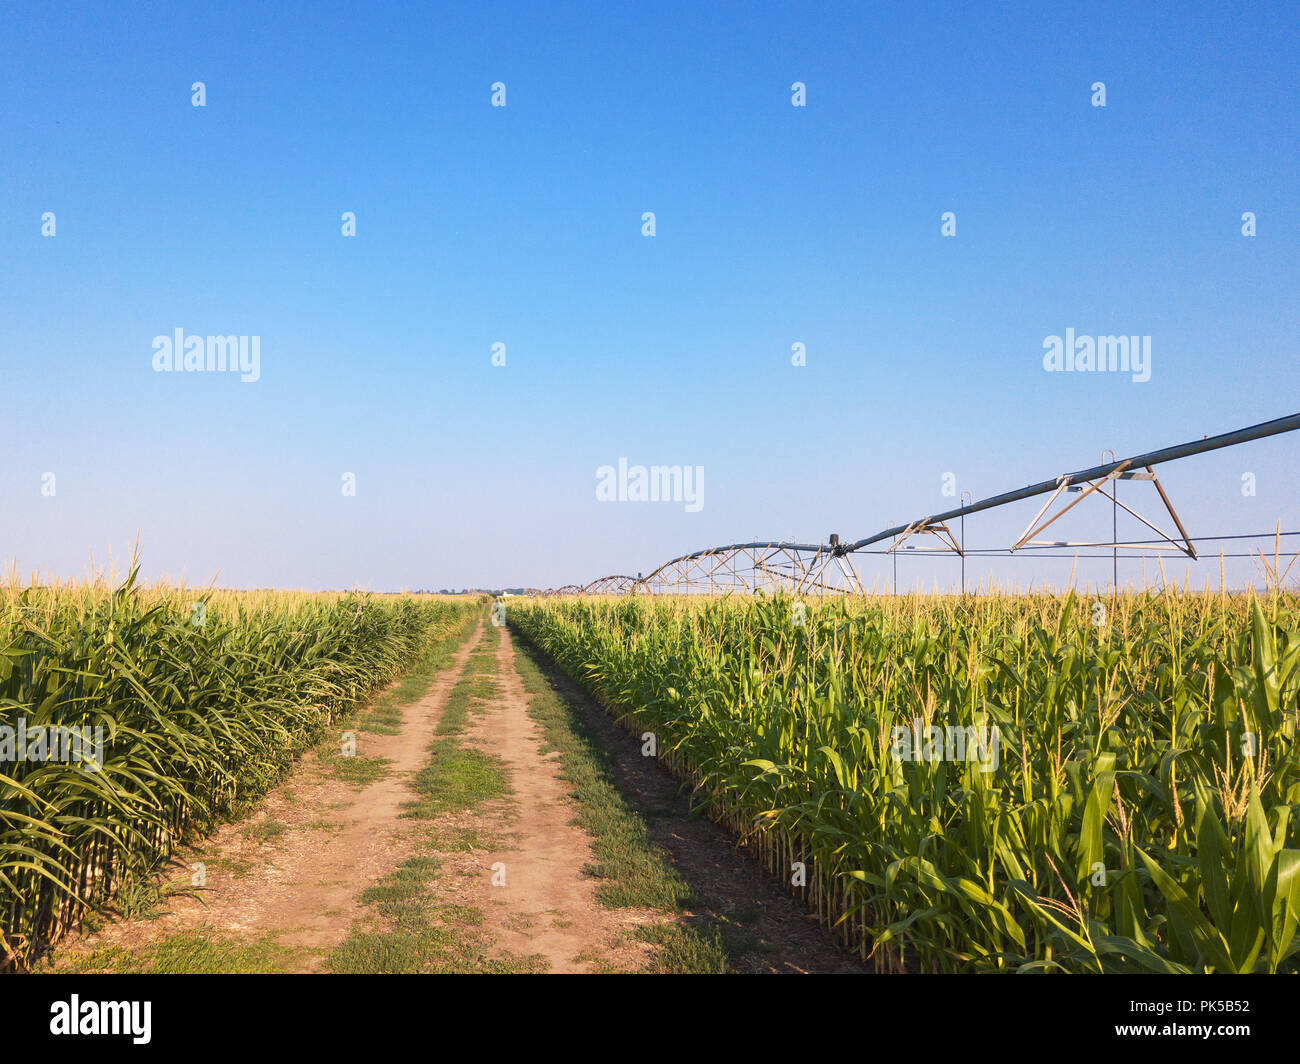 Drone photography, aerial view of water irrigation system in cultivated cornfield - Stock Image